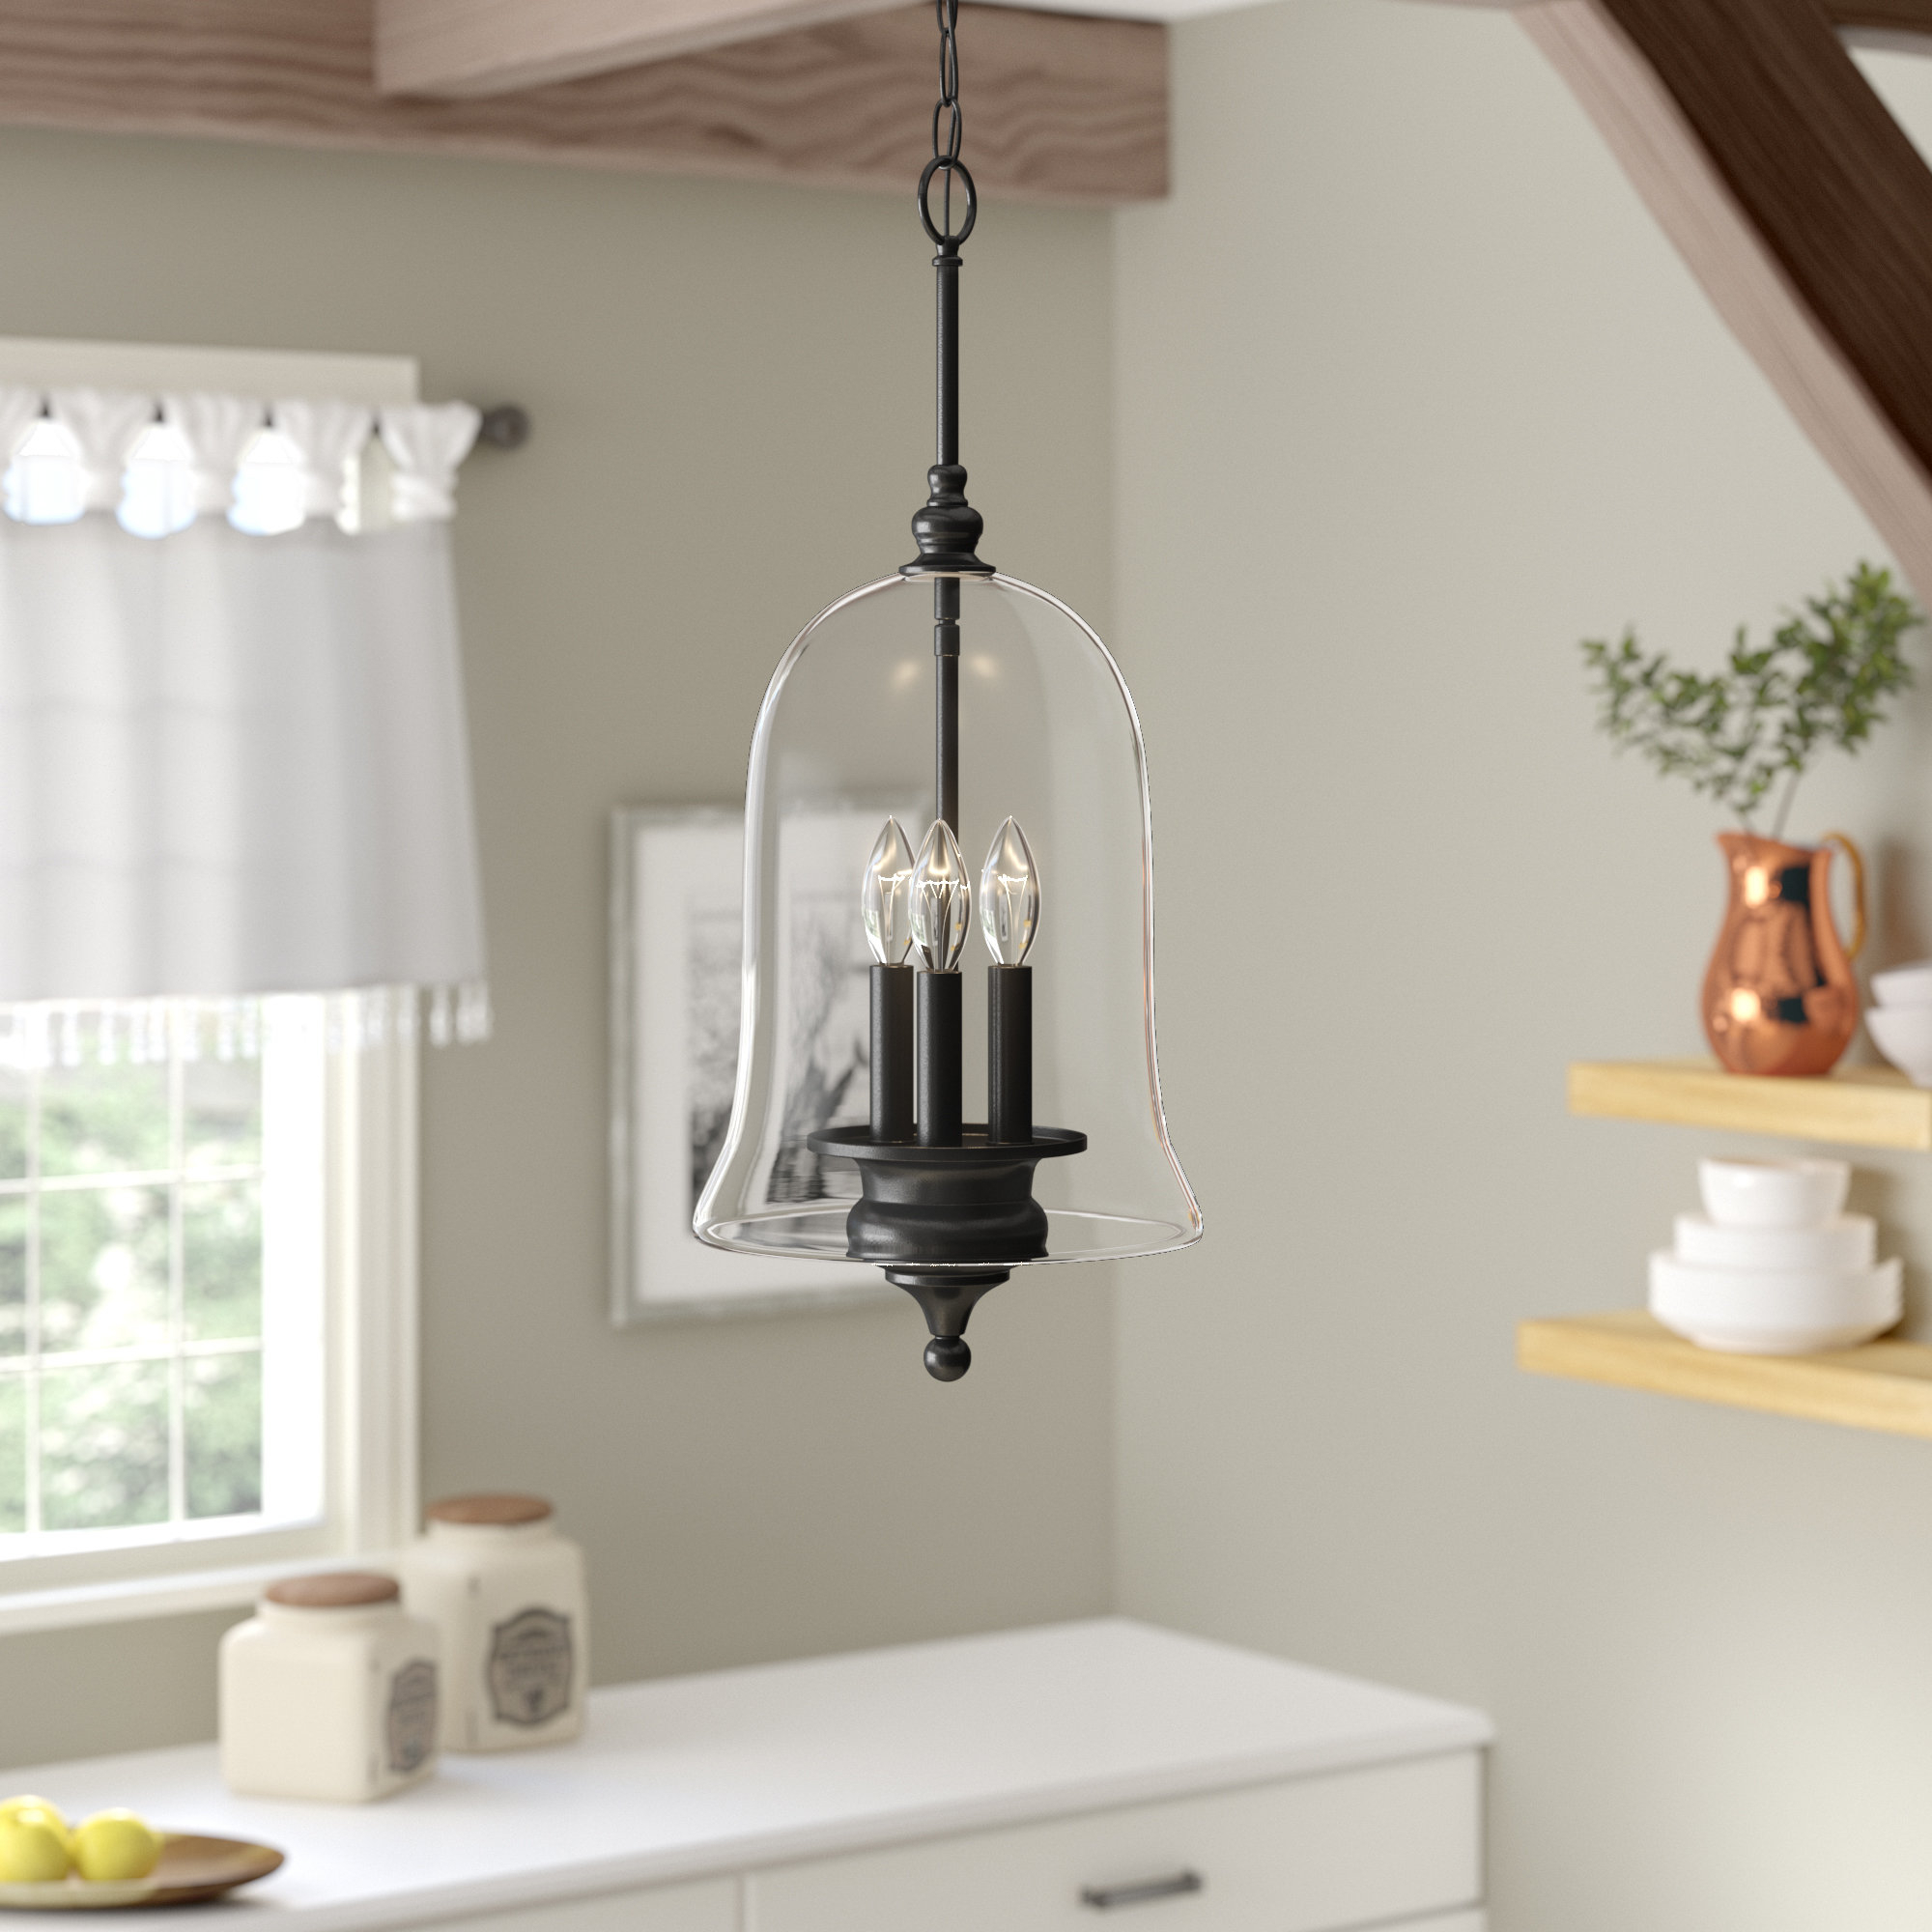 2019 Youngberg 3 Light Single Bell Pendant In Van Horne 3 Light Single Teardrop Pendants (Gallery 3 of 20)